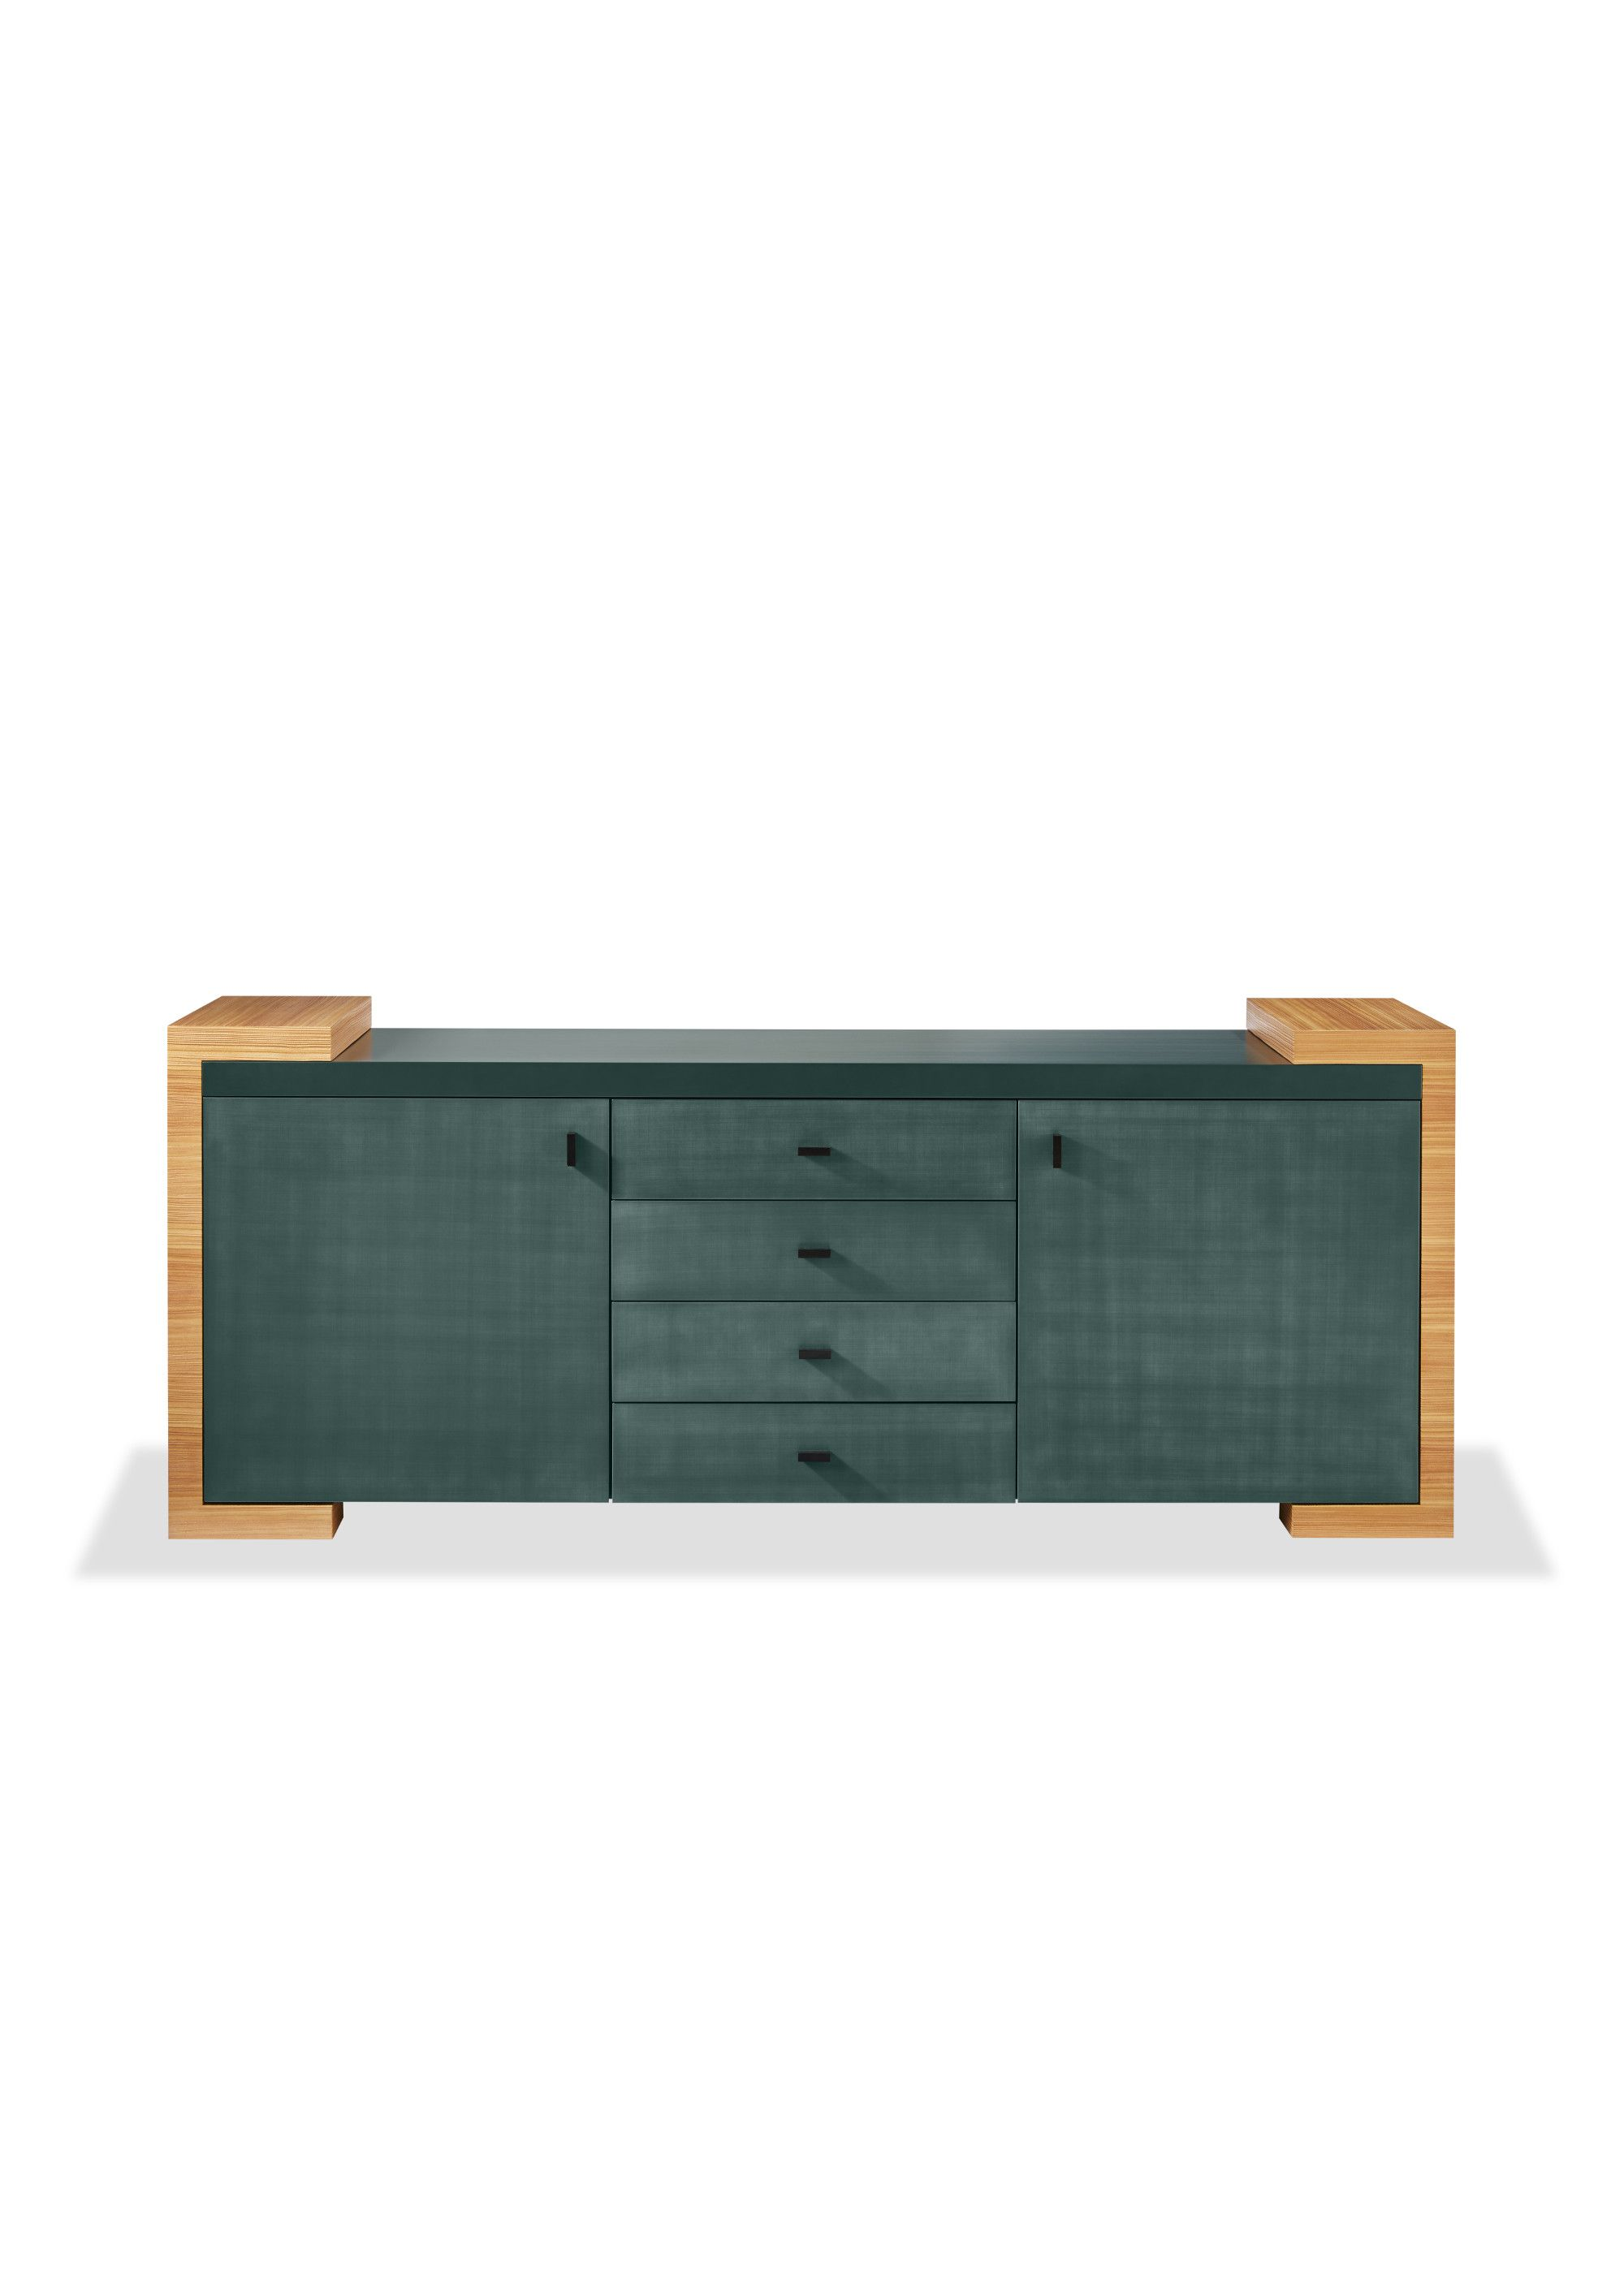 Otto Sideboard With Top In Vert Mousse Lacquer Satin Finish Sides In Sandblasted Natural Larch Wood Front In Vert Mousse Washi Lacquer Satin Fin Philippe